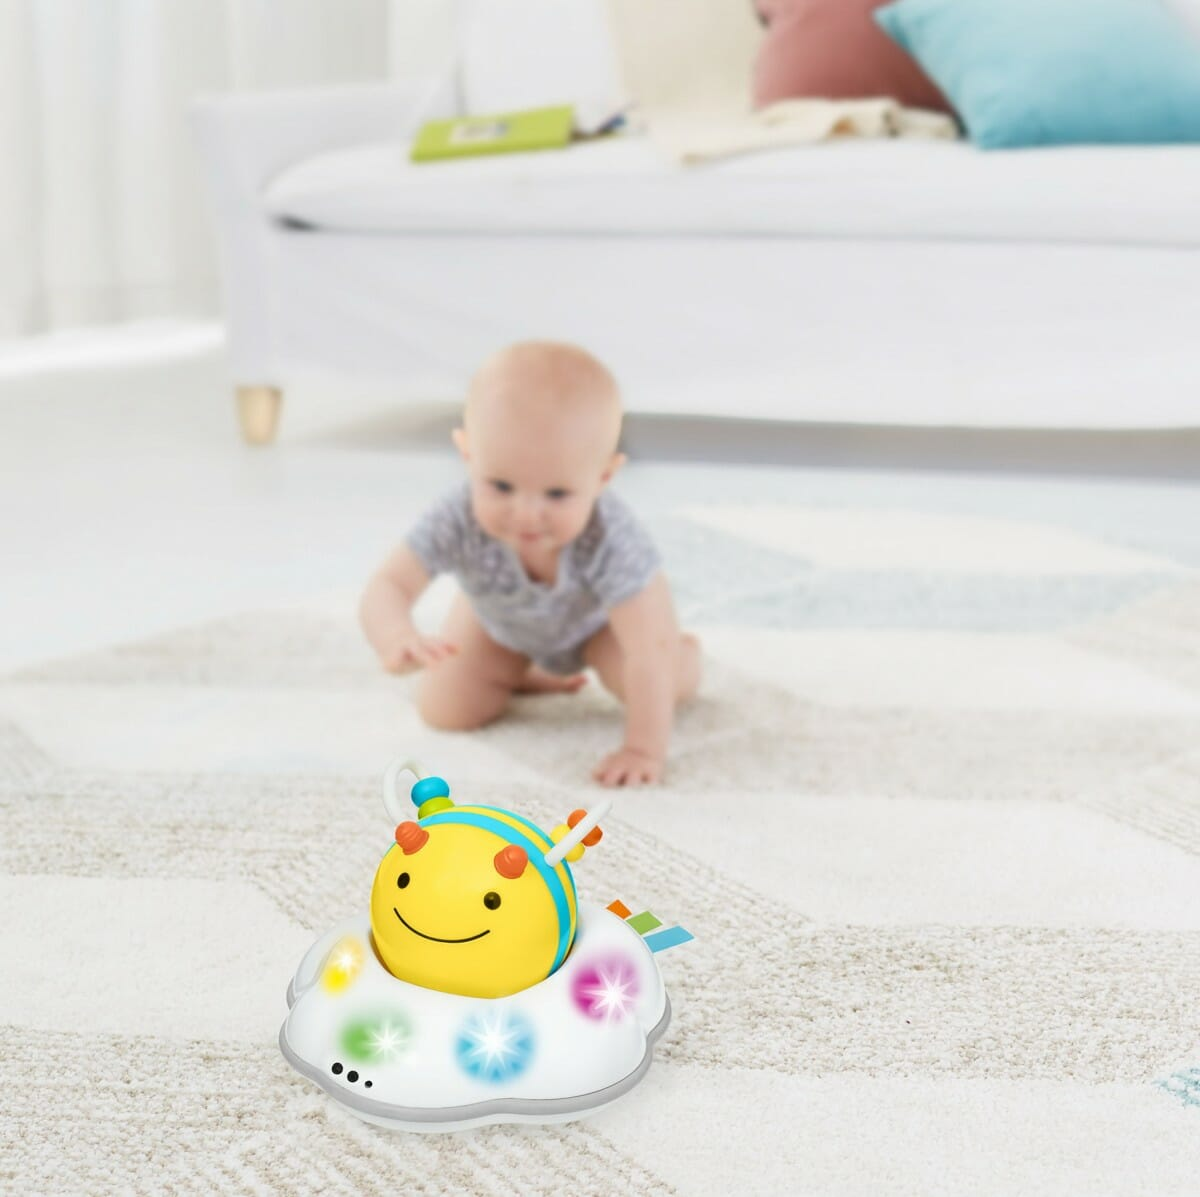 Skip Hop Explore & More Follow Bee Crawl Toy Lifestyle